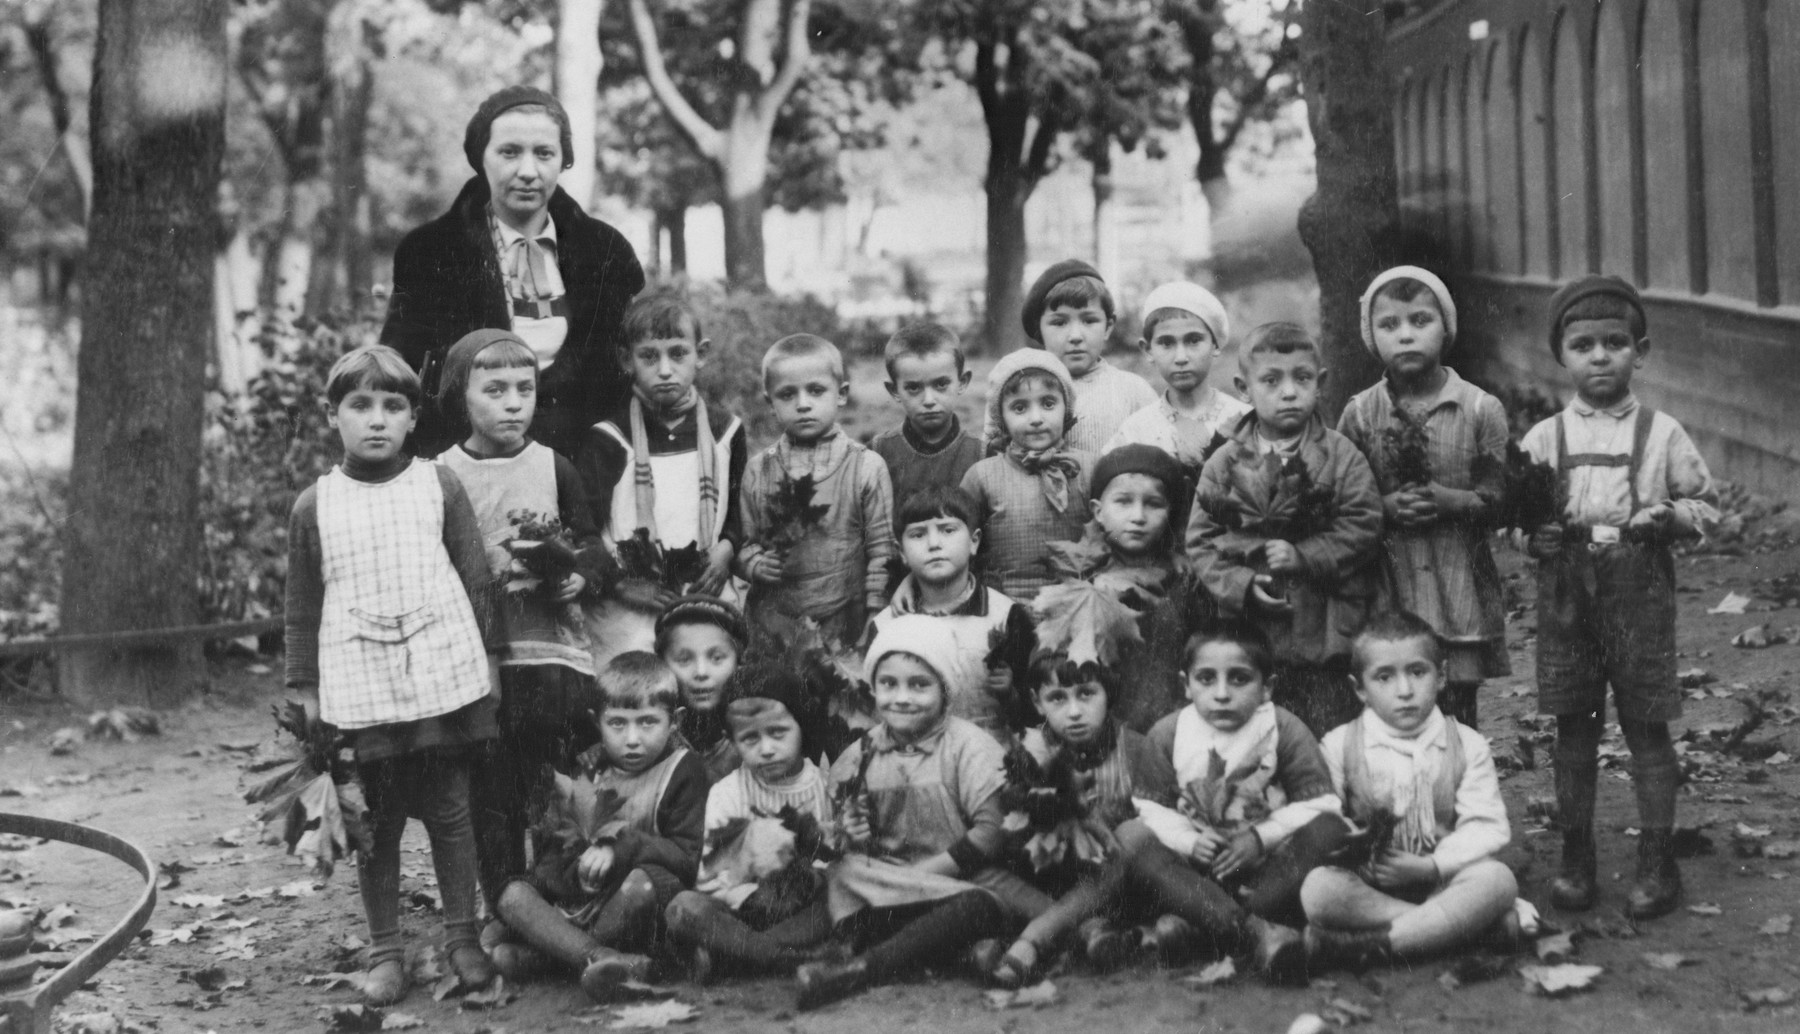 Children from the Jewish kindergarten (located at 9 Mapu Street) in Kovno, Lithuania, pose outside holding leaves.